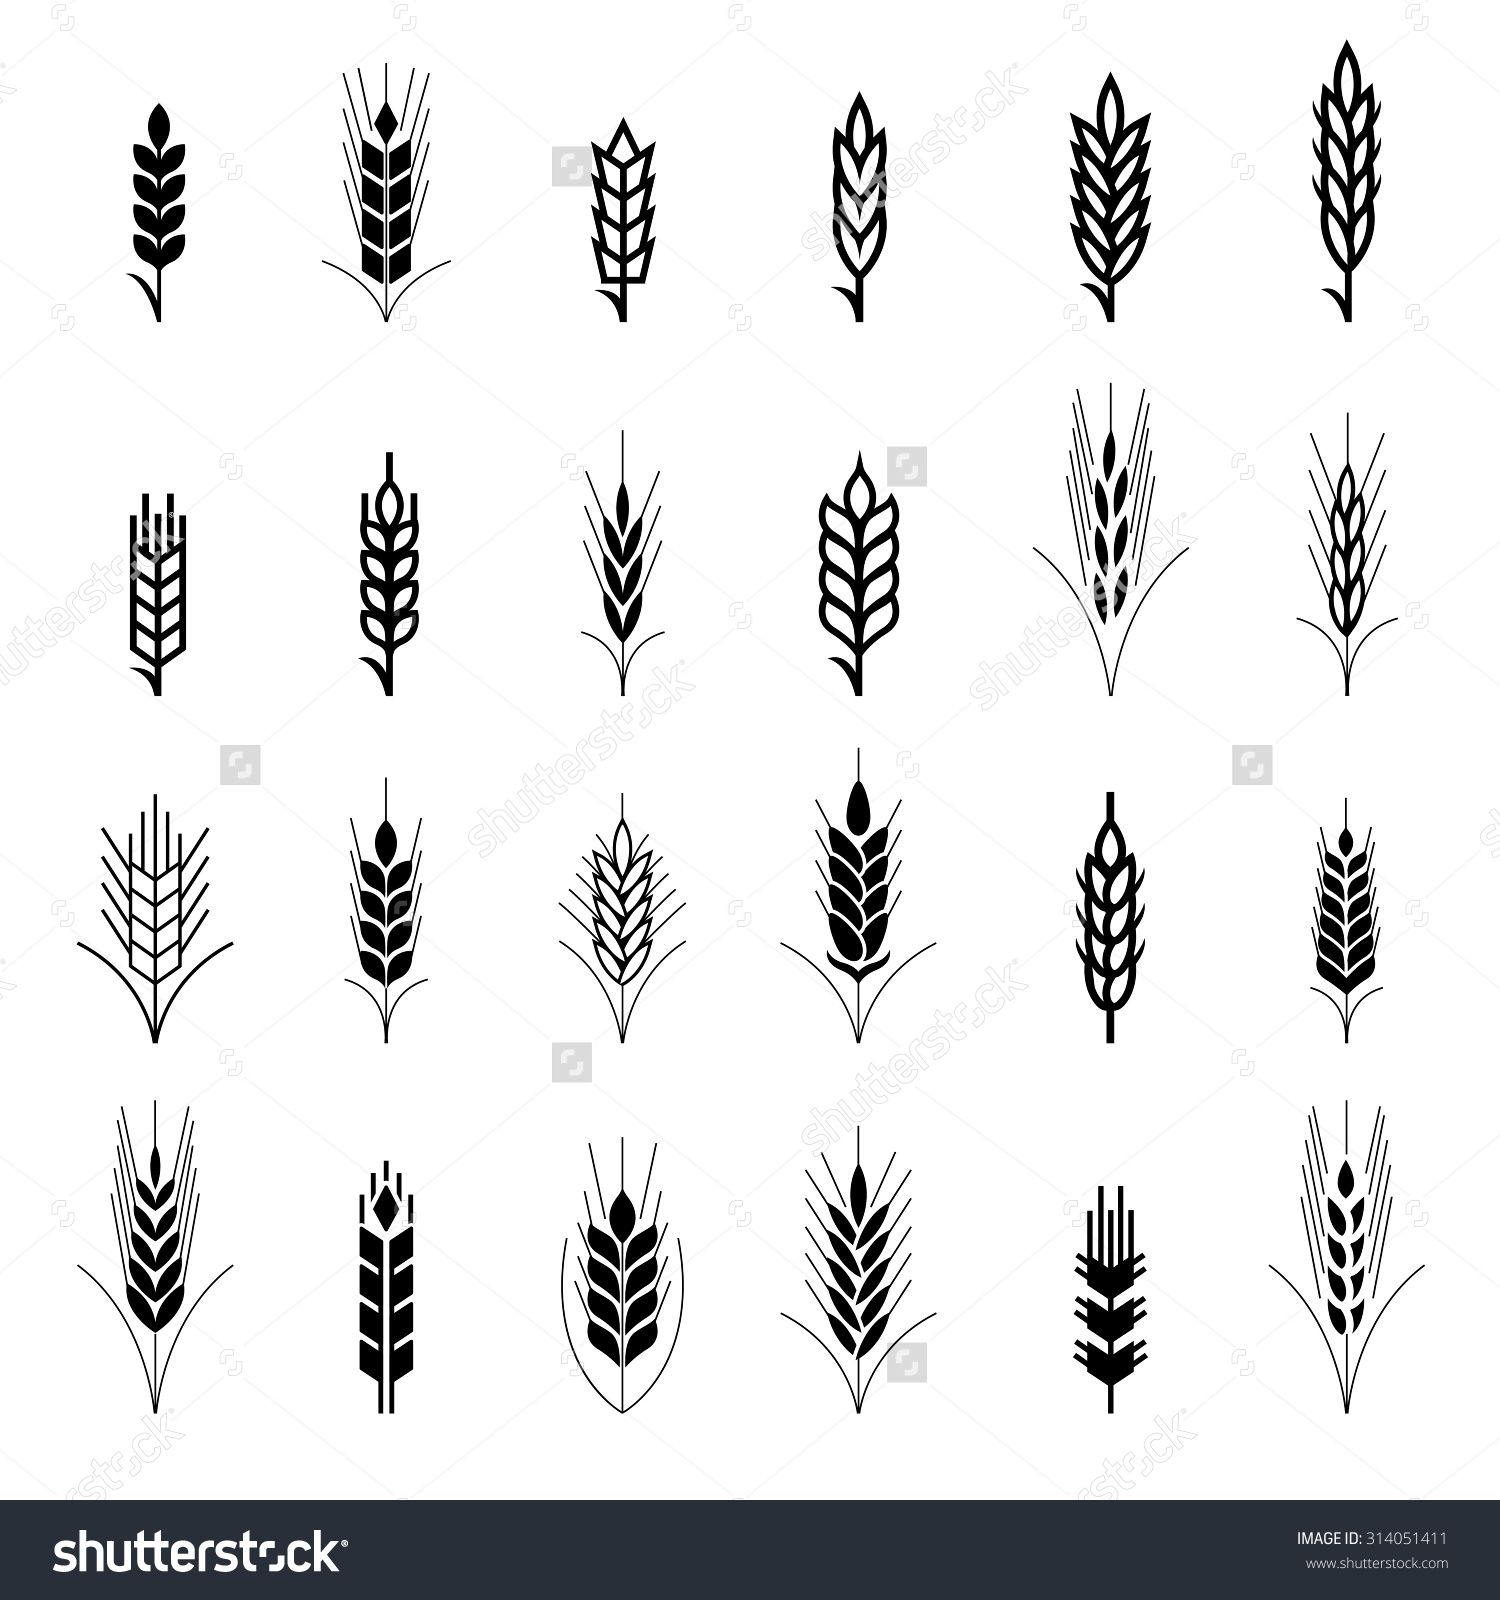 Stock Vector Wheat Ear Symbols For Logo Design Agriculture Grain